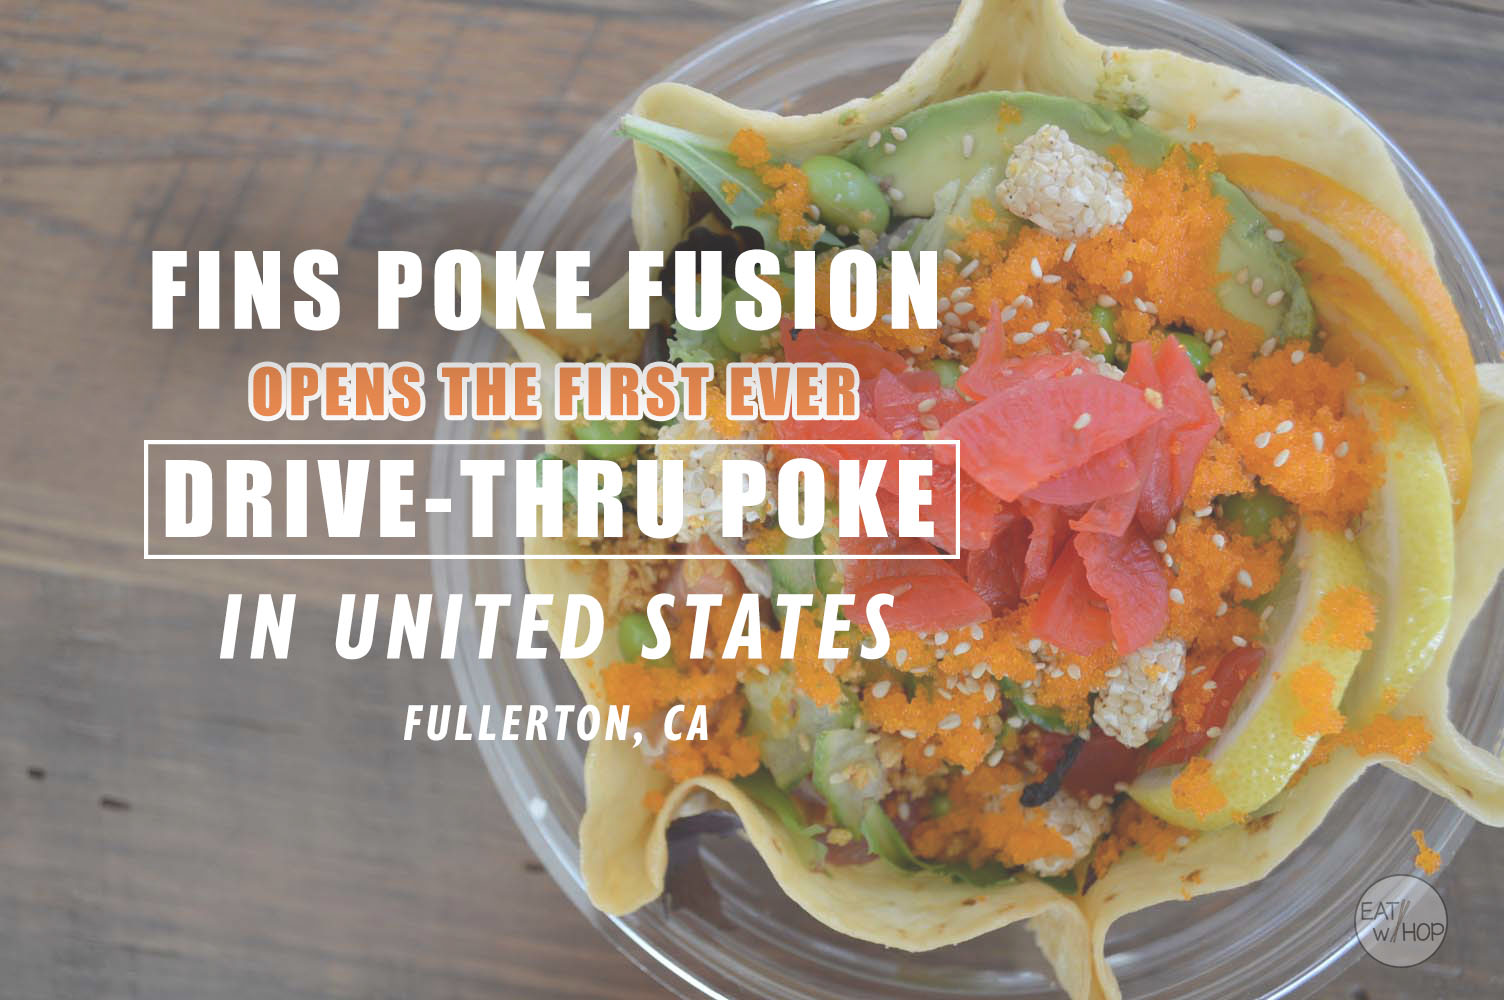 No Need to Leave Your Car to Order Poke at Fins Poke Fusion in Fullerton!